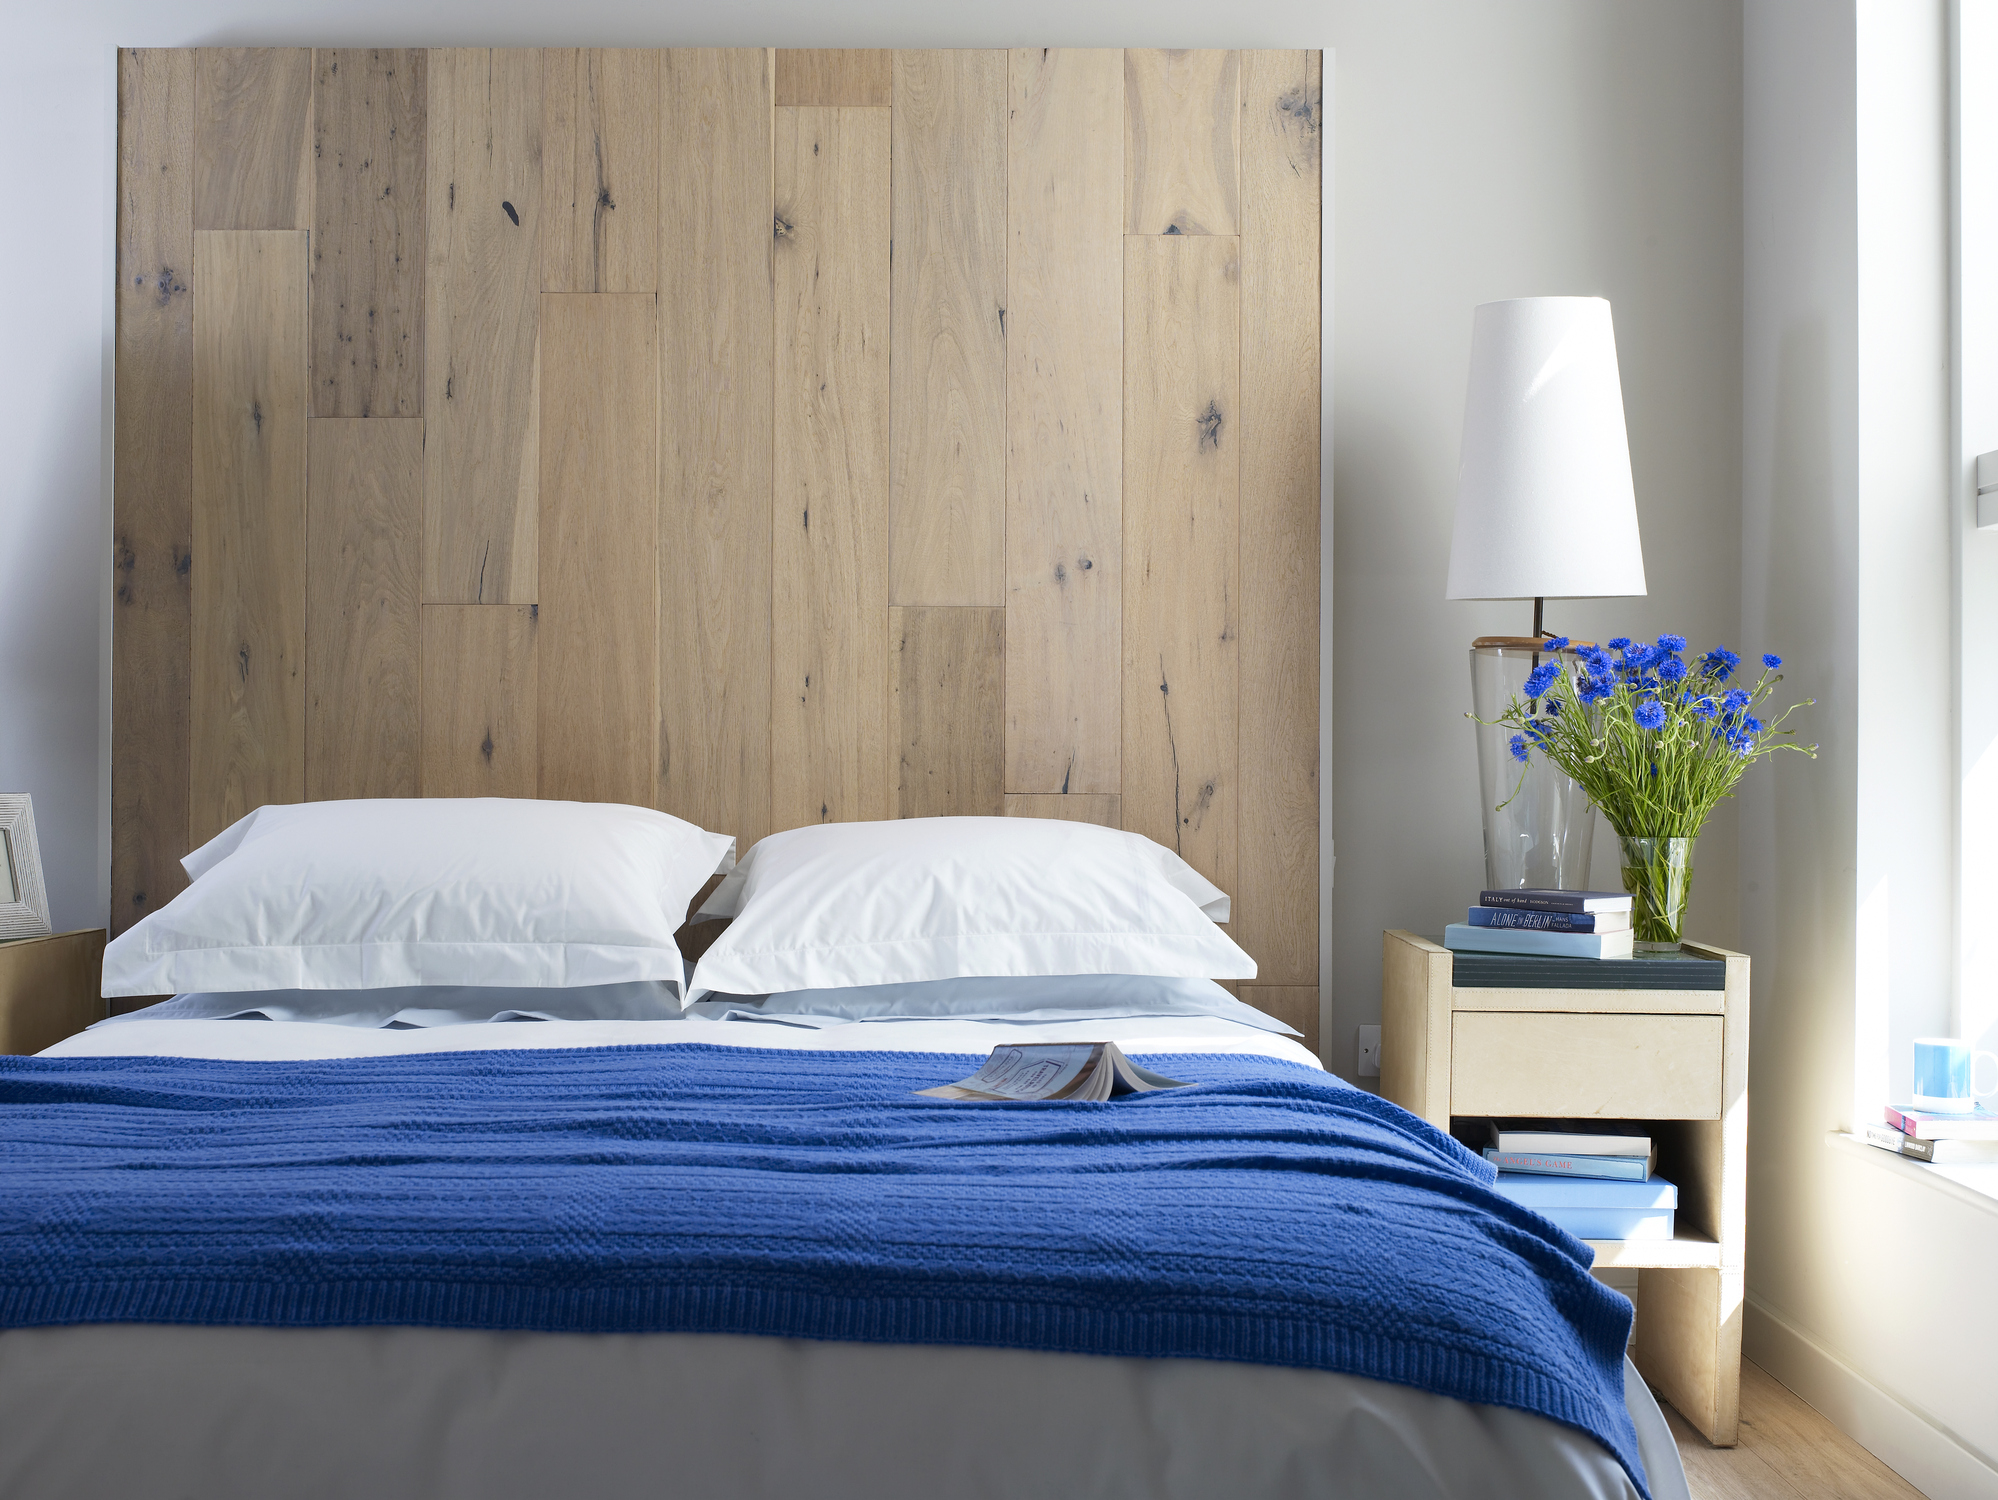 Select a Statement Headboard. 12 Tricks to Make a Tiny Bedroom Look Bigger